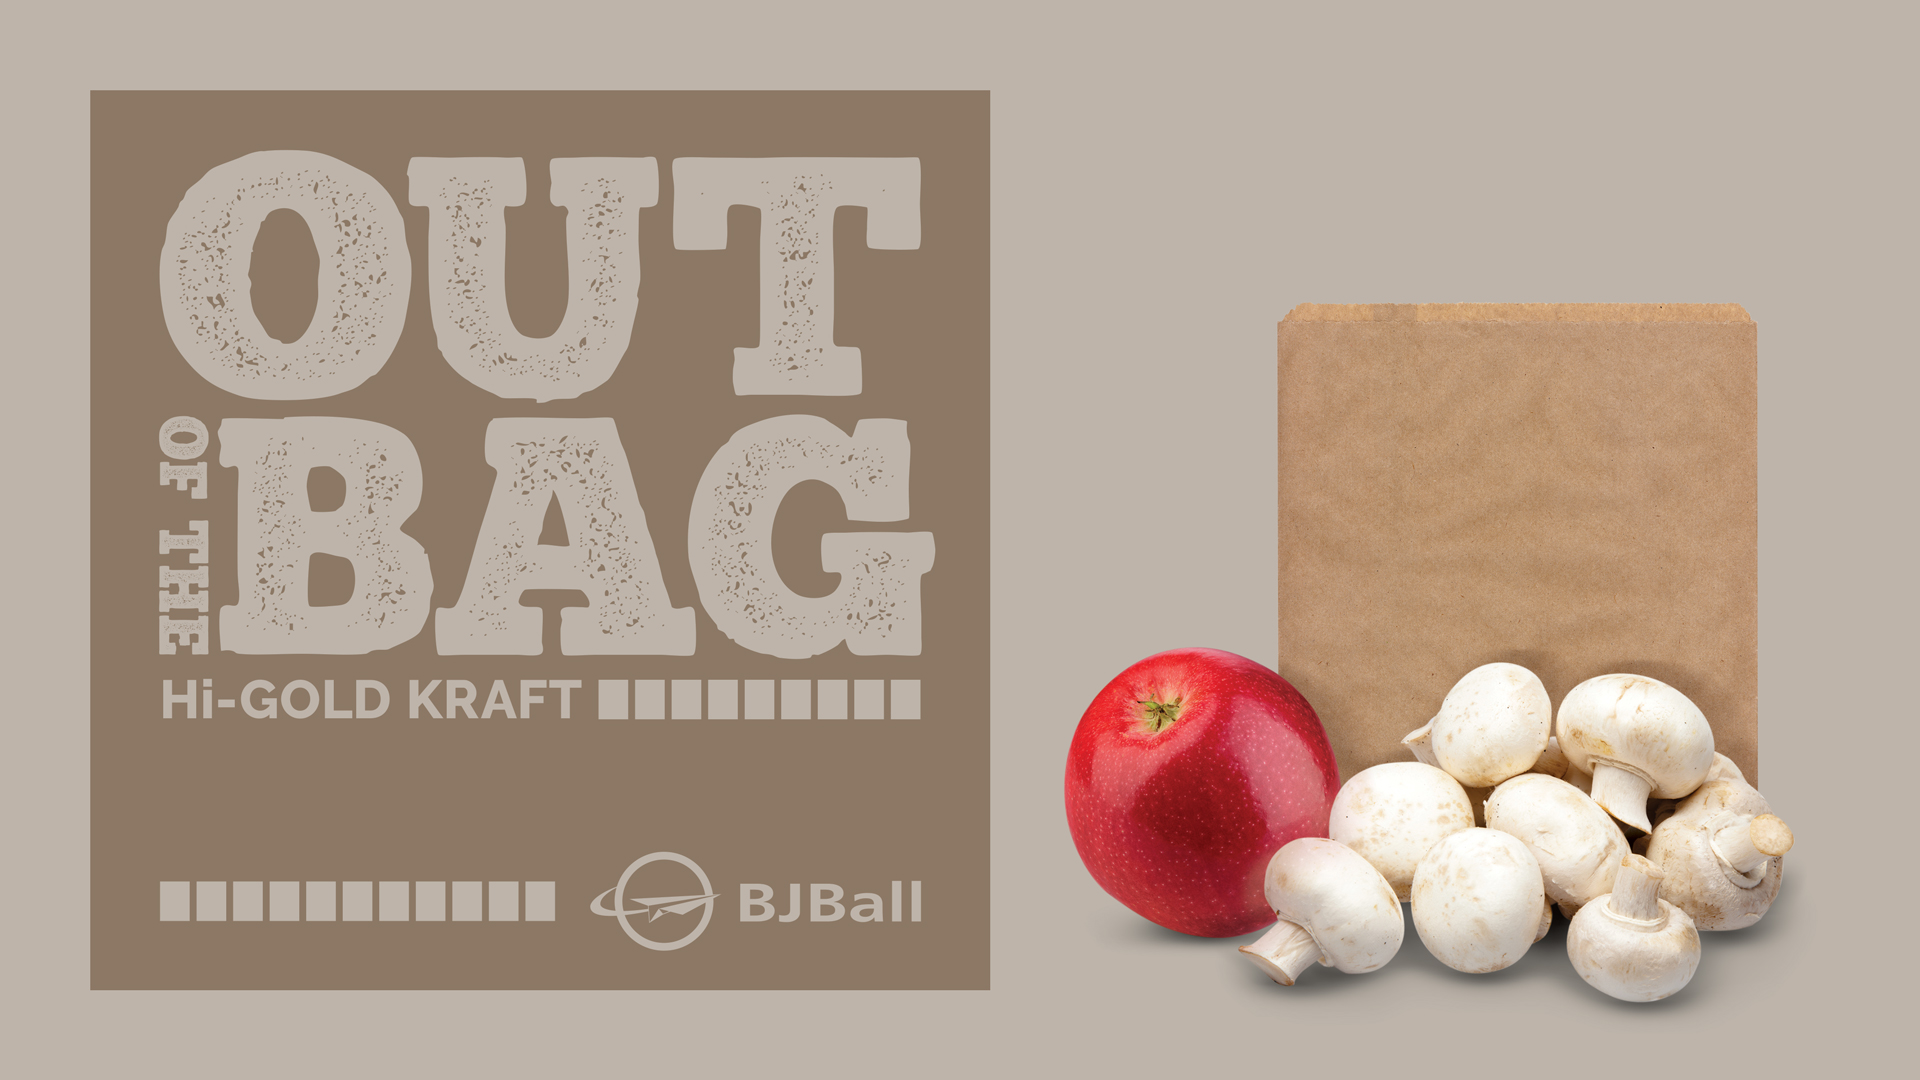 Kraft paper bag with fruit & vegetables